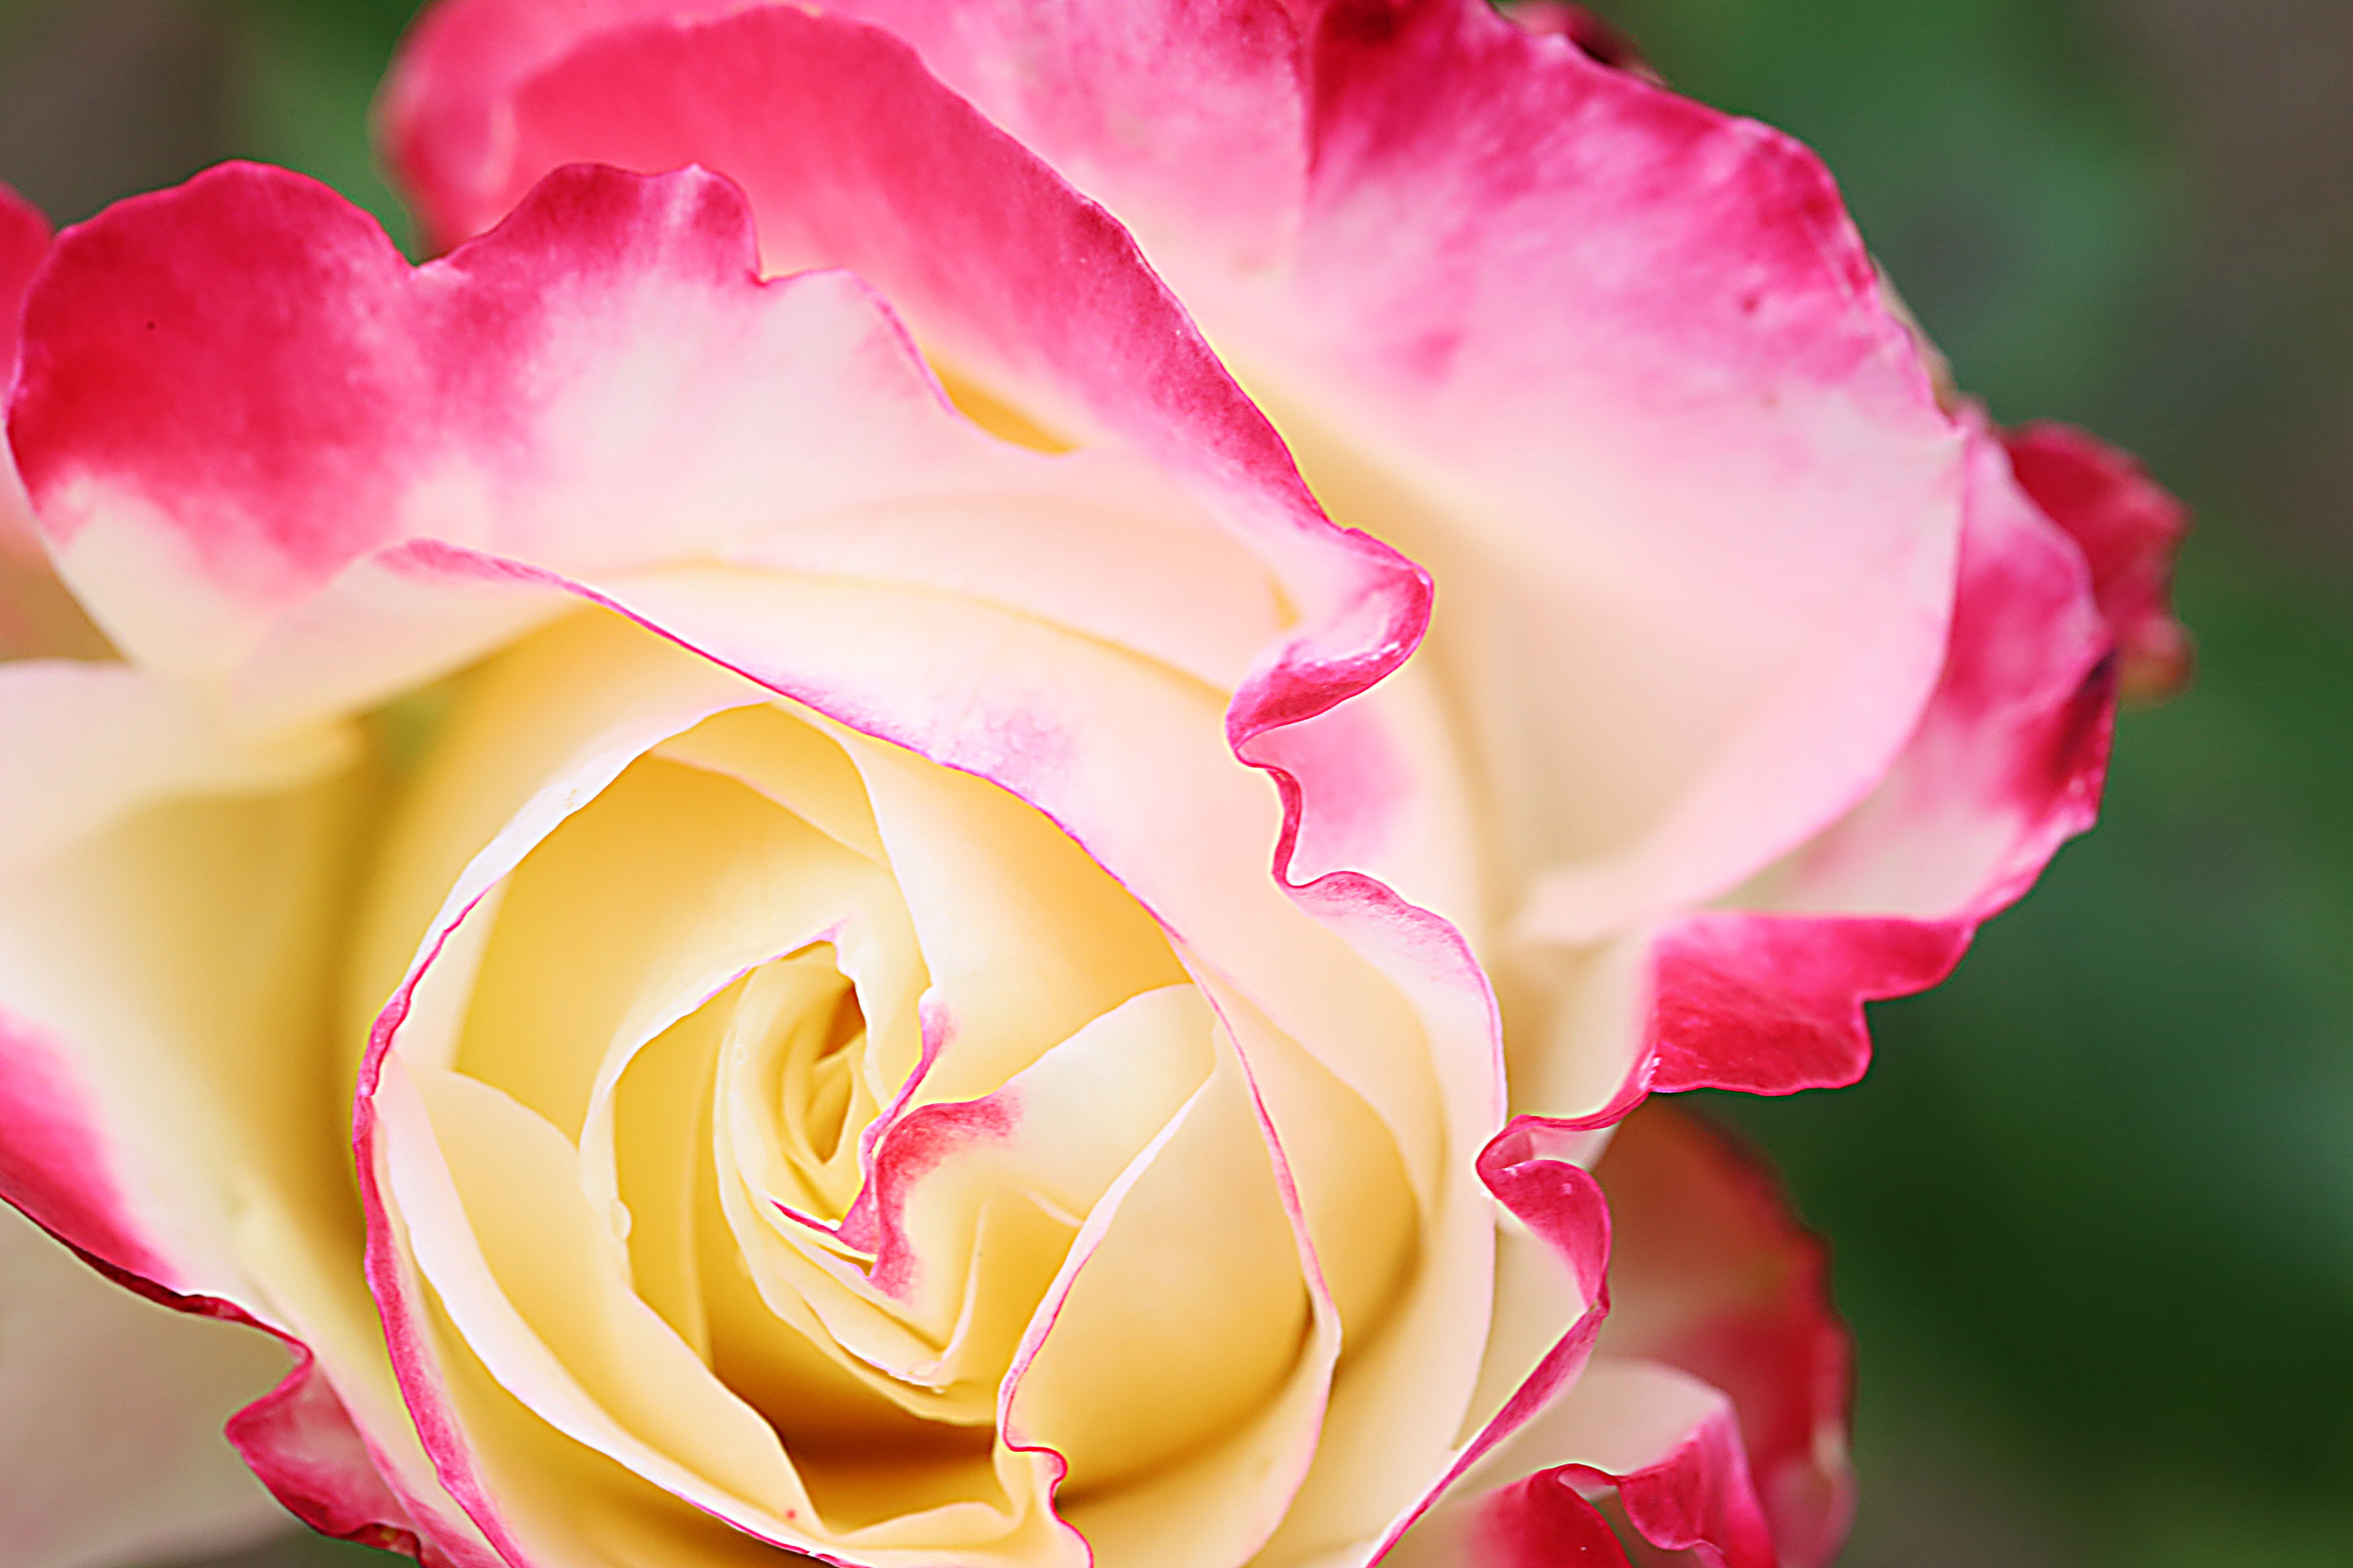 Double Delight Roses Are the Two-Tone Blooms of Your Dreams